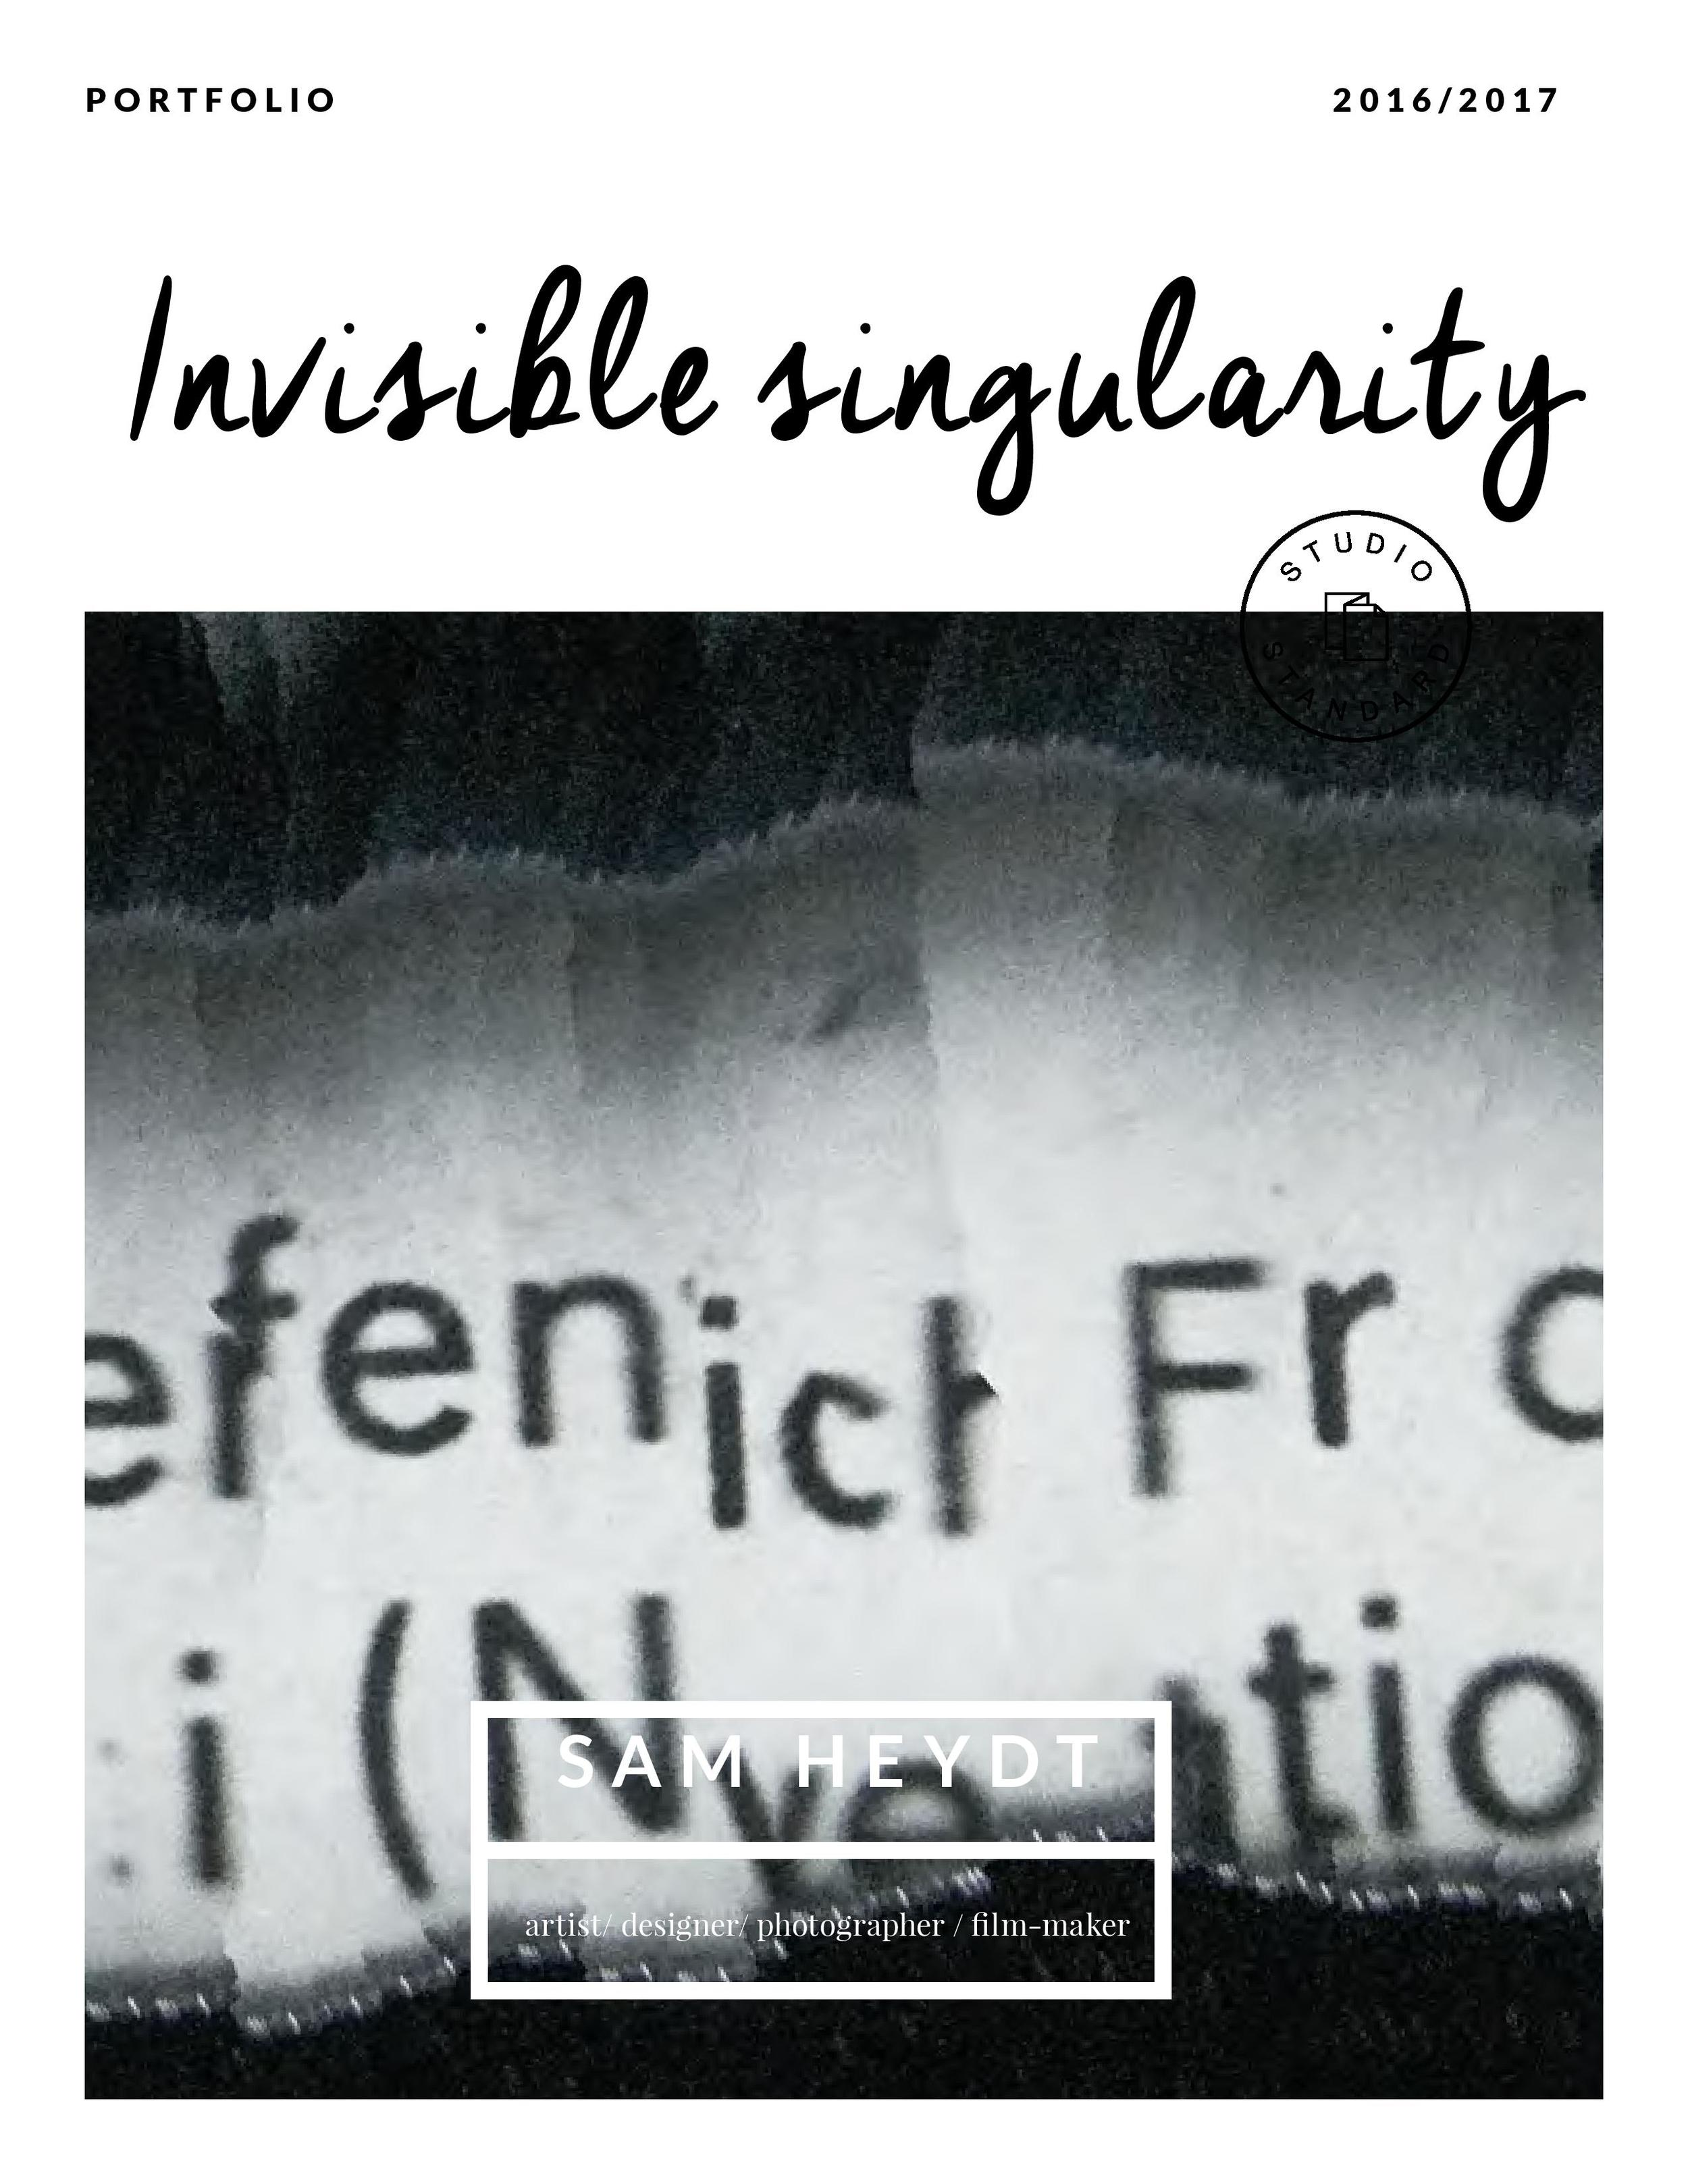 Invisible-Singularity-HEYDT-web-page-006.jpg